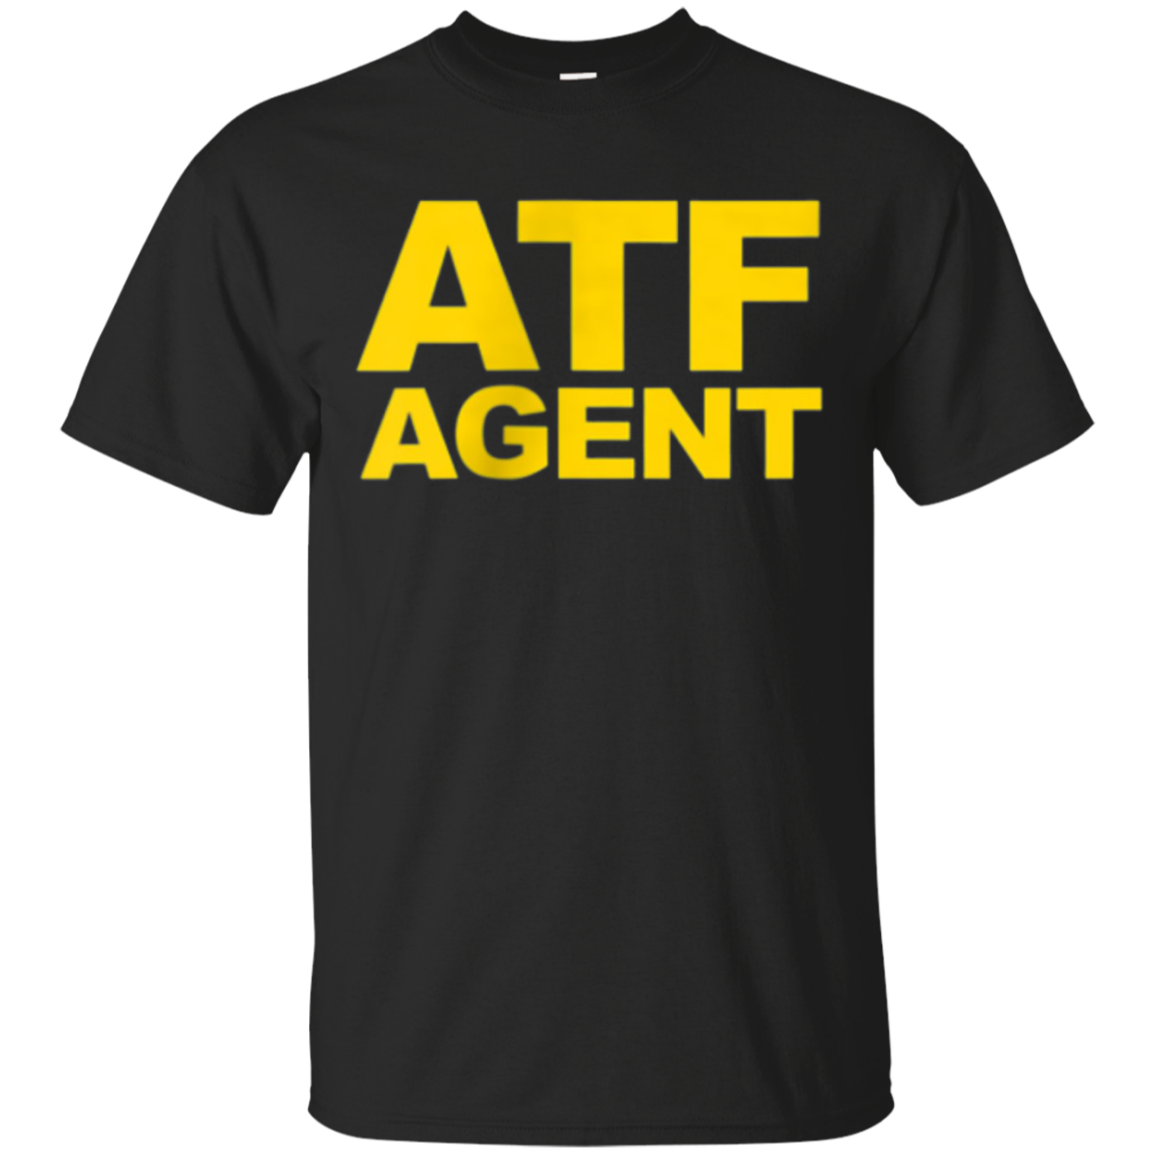 ATF Agent Shirt Navy Blue Front Back ATF Law Cosplay